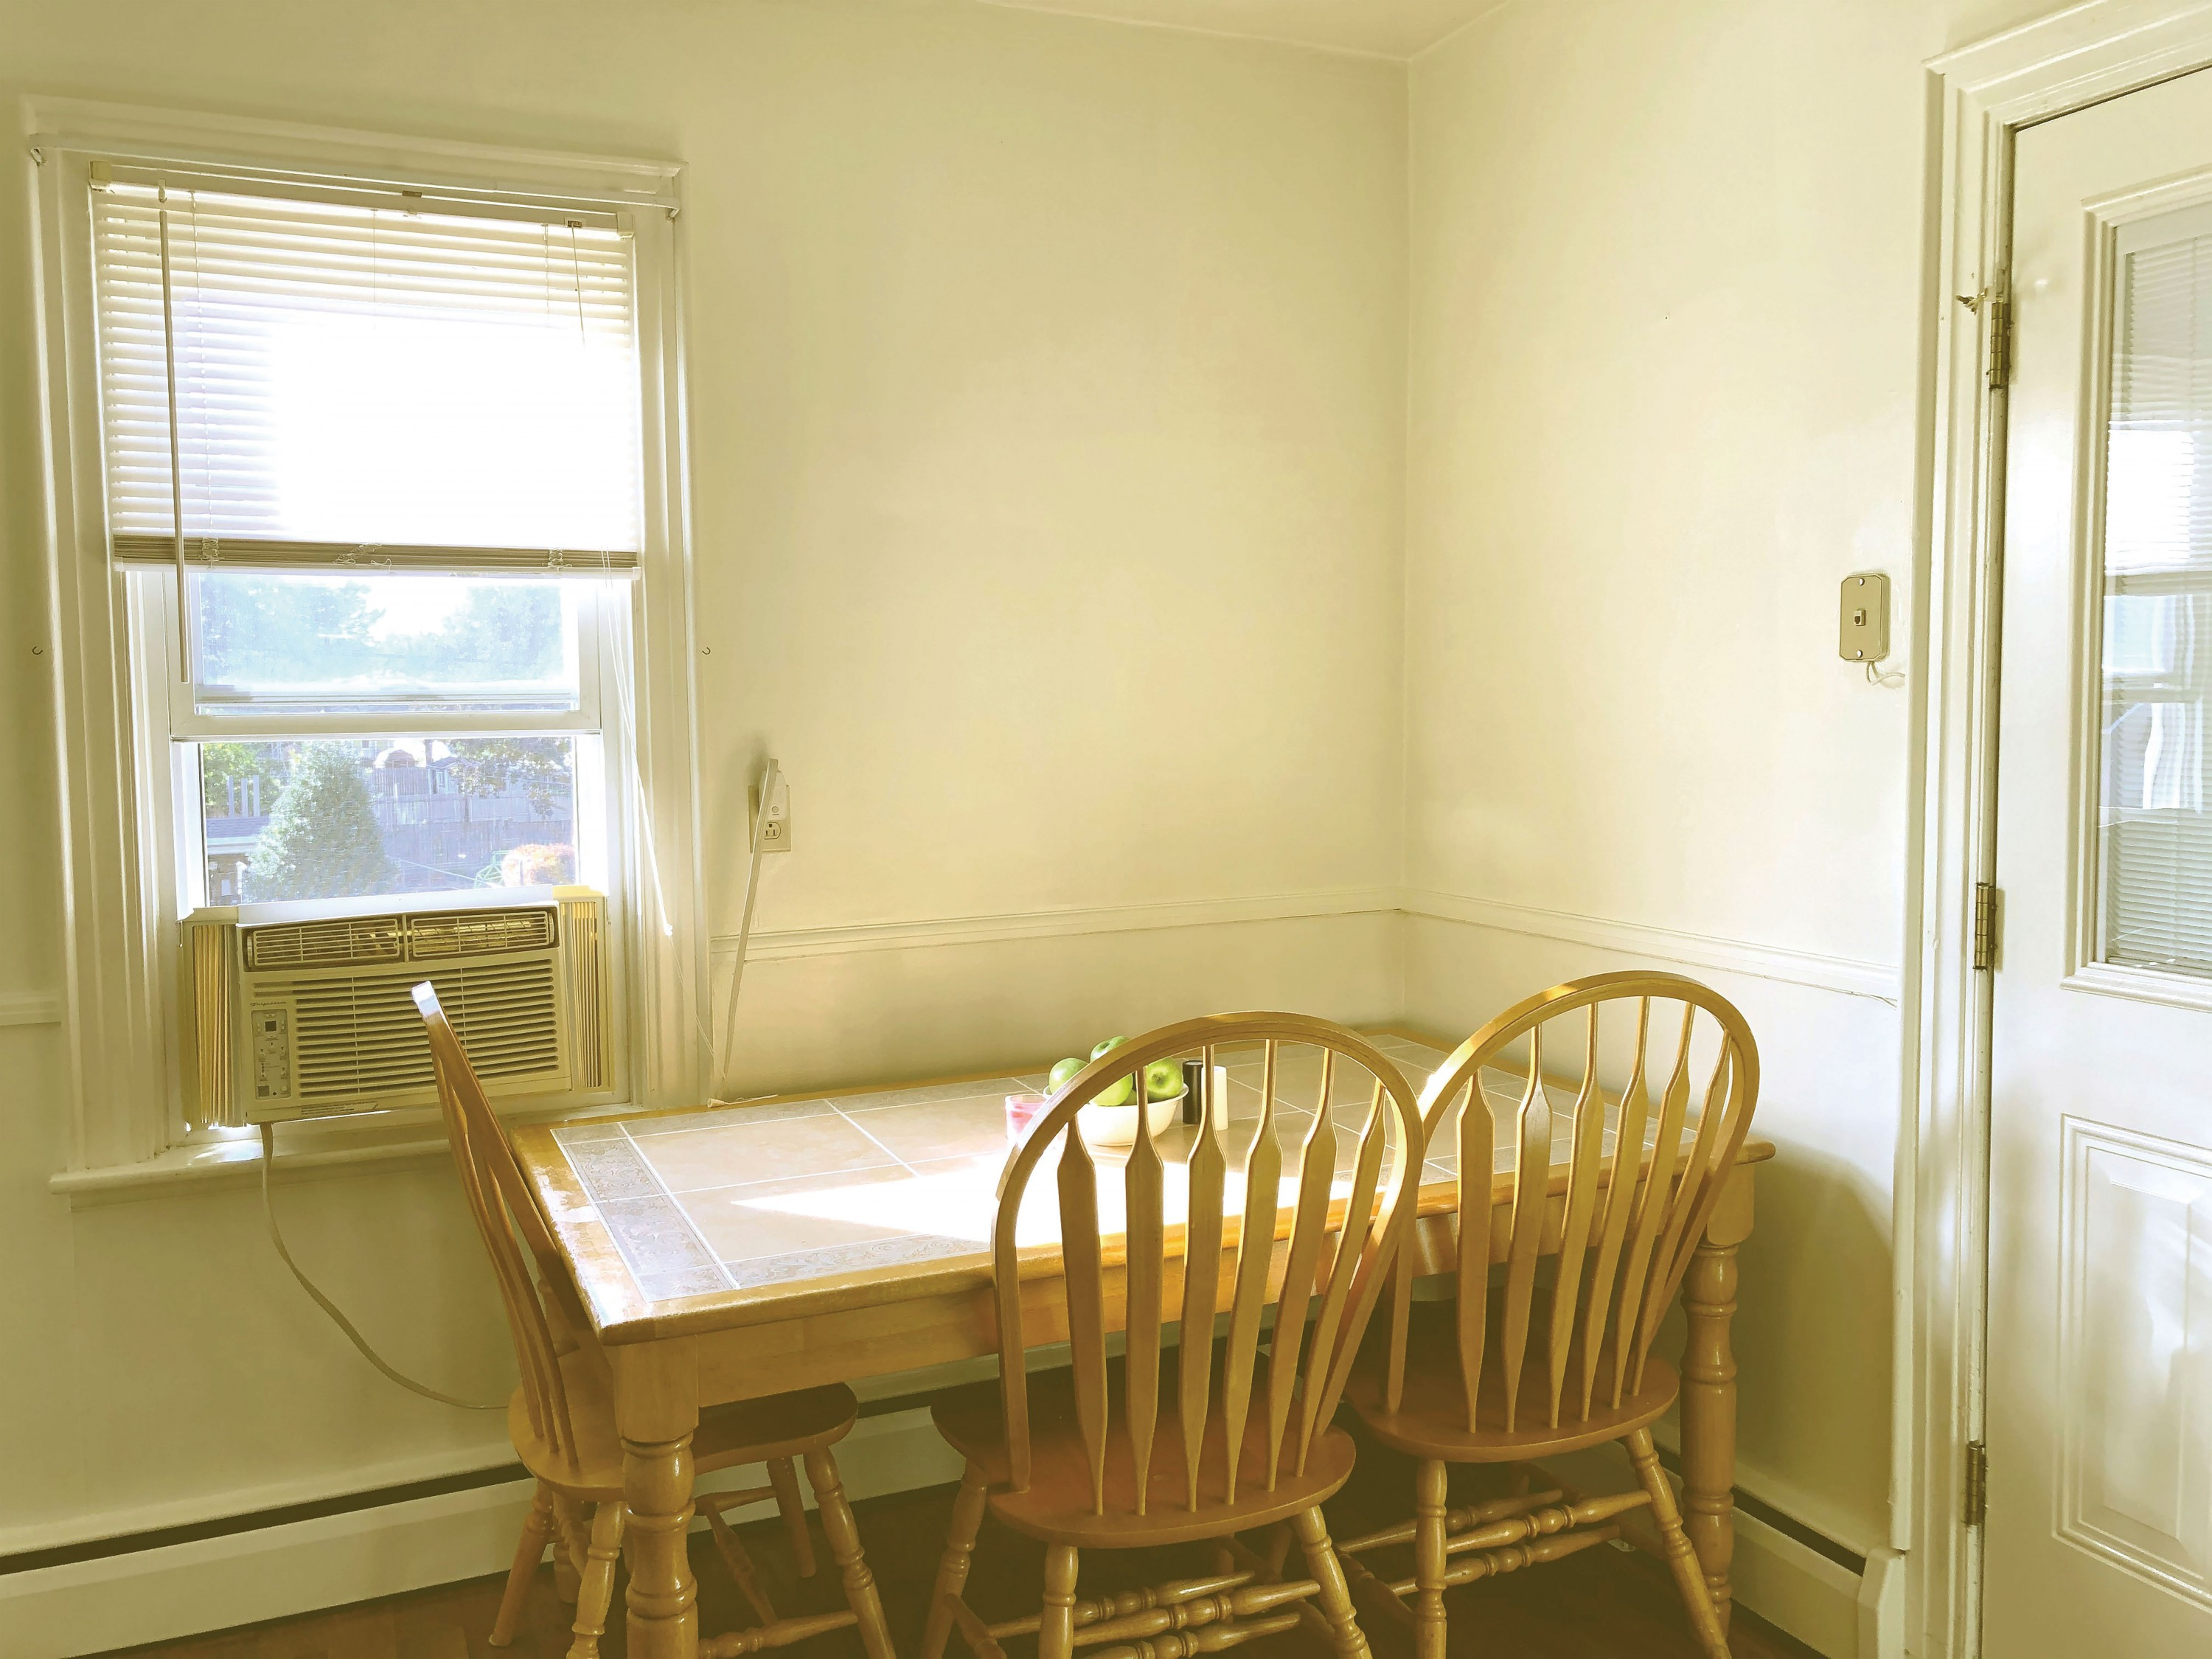 A photo of a kitchen table and chairs, situated in the corner of the kitchen with a bowl of green apples on top. There is a window to the left of the table, with sunlight streaming into the entire room.